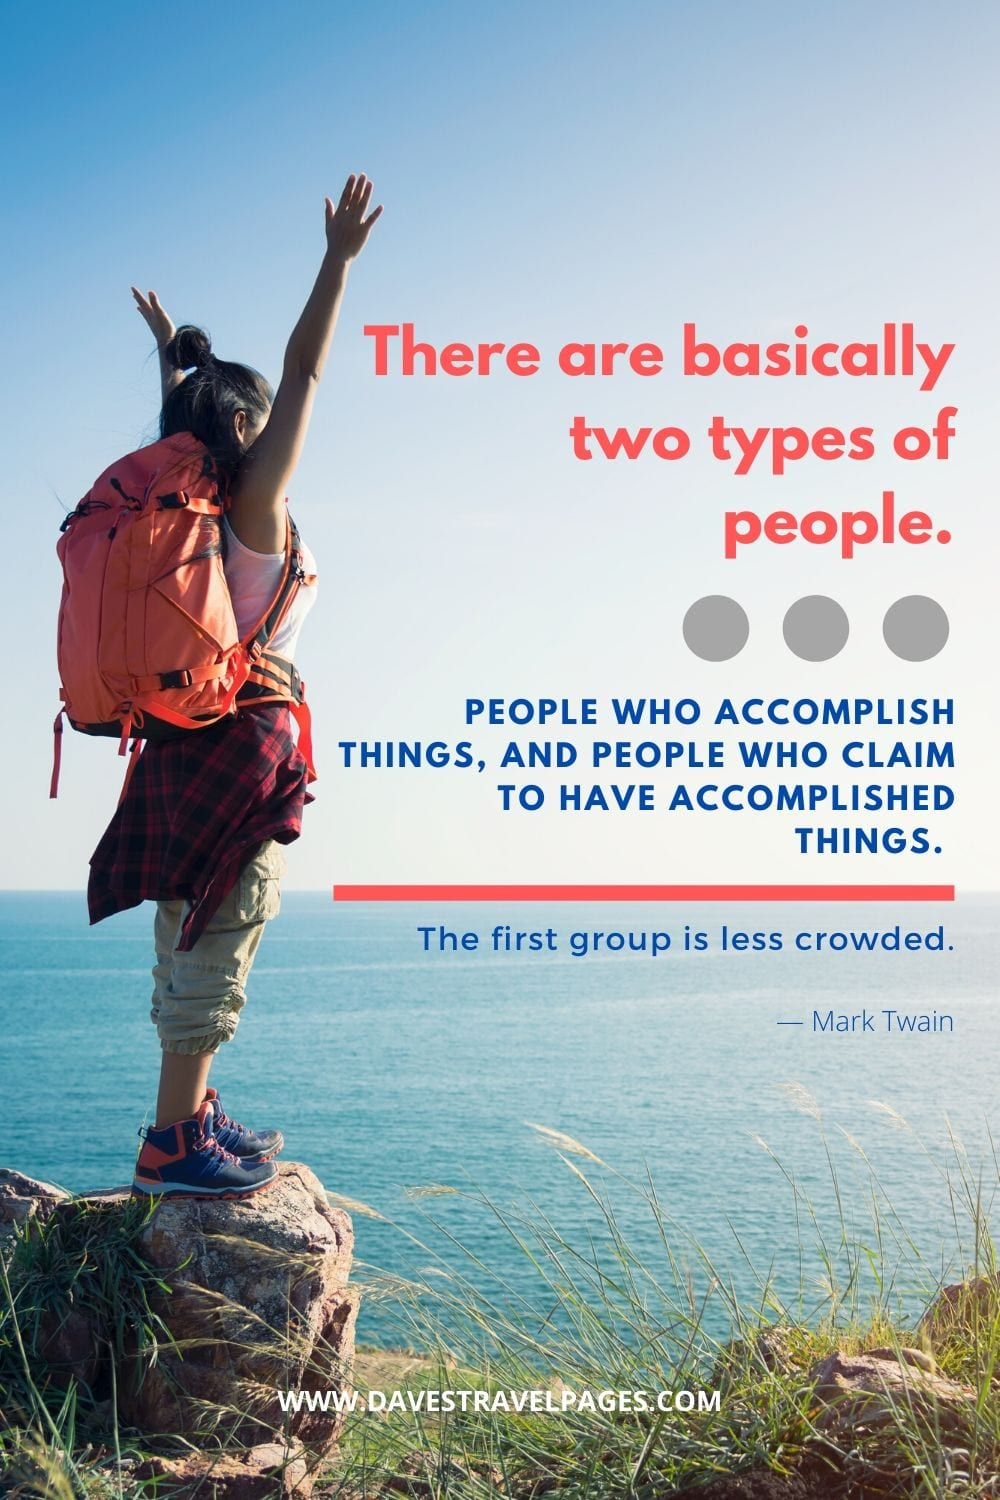 Inspiring quote by Mark Twain: There are basically two types of people. People who accomplish things, and people who claim to have accomplished things. The first group is less crowded.